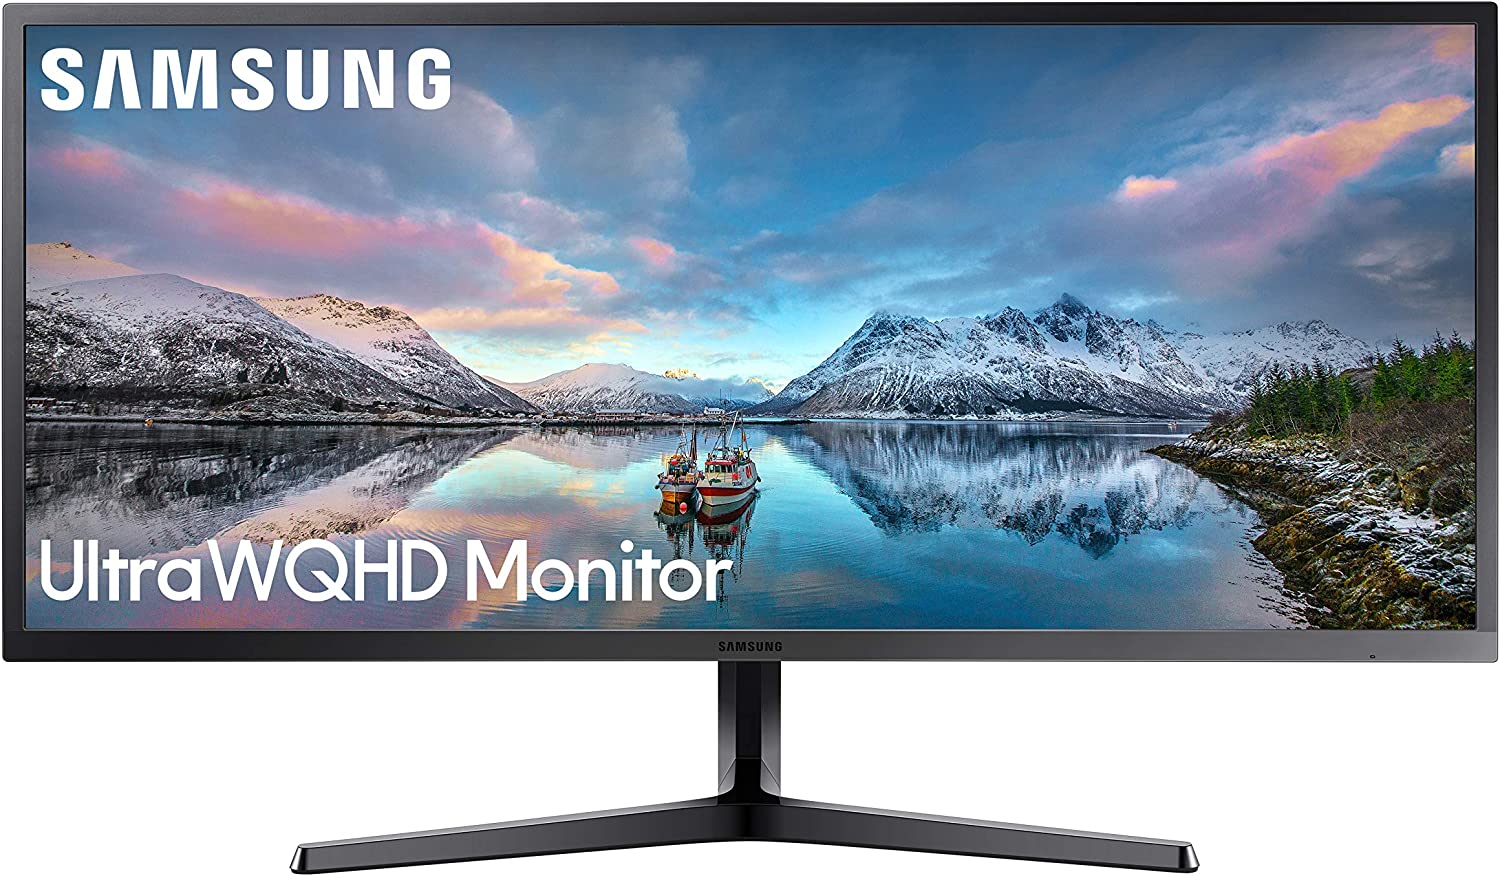 WOOT! Deal of the Day! Factory Reconditioned Samsung Monitors!